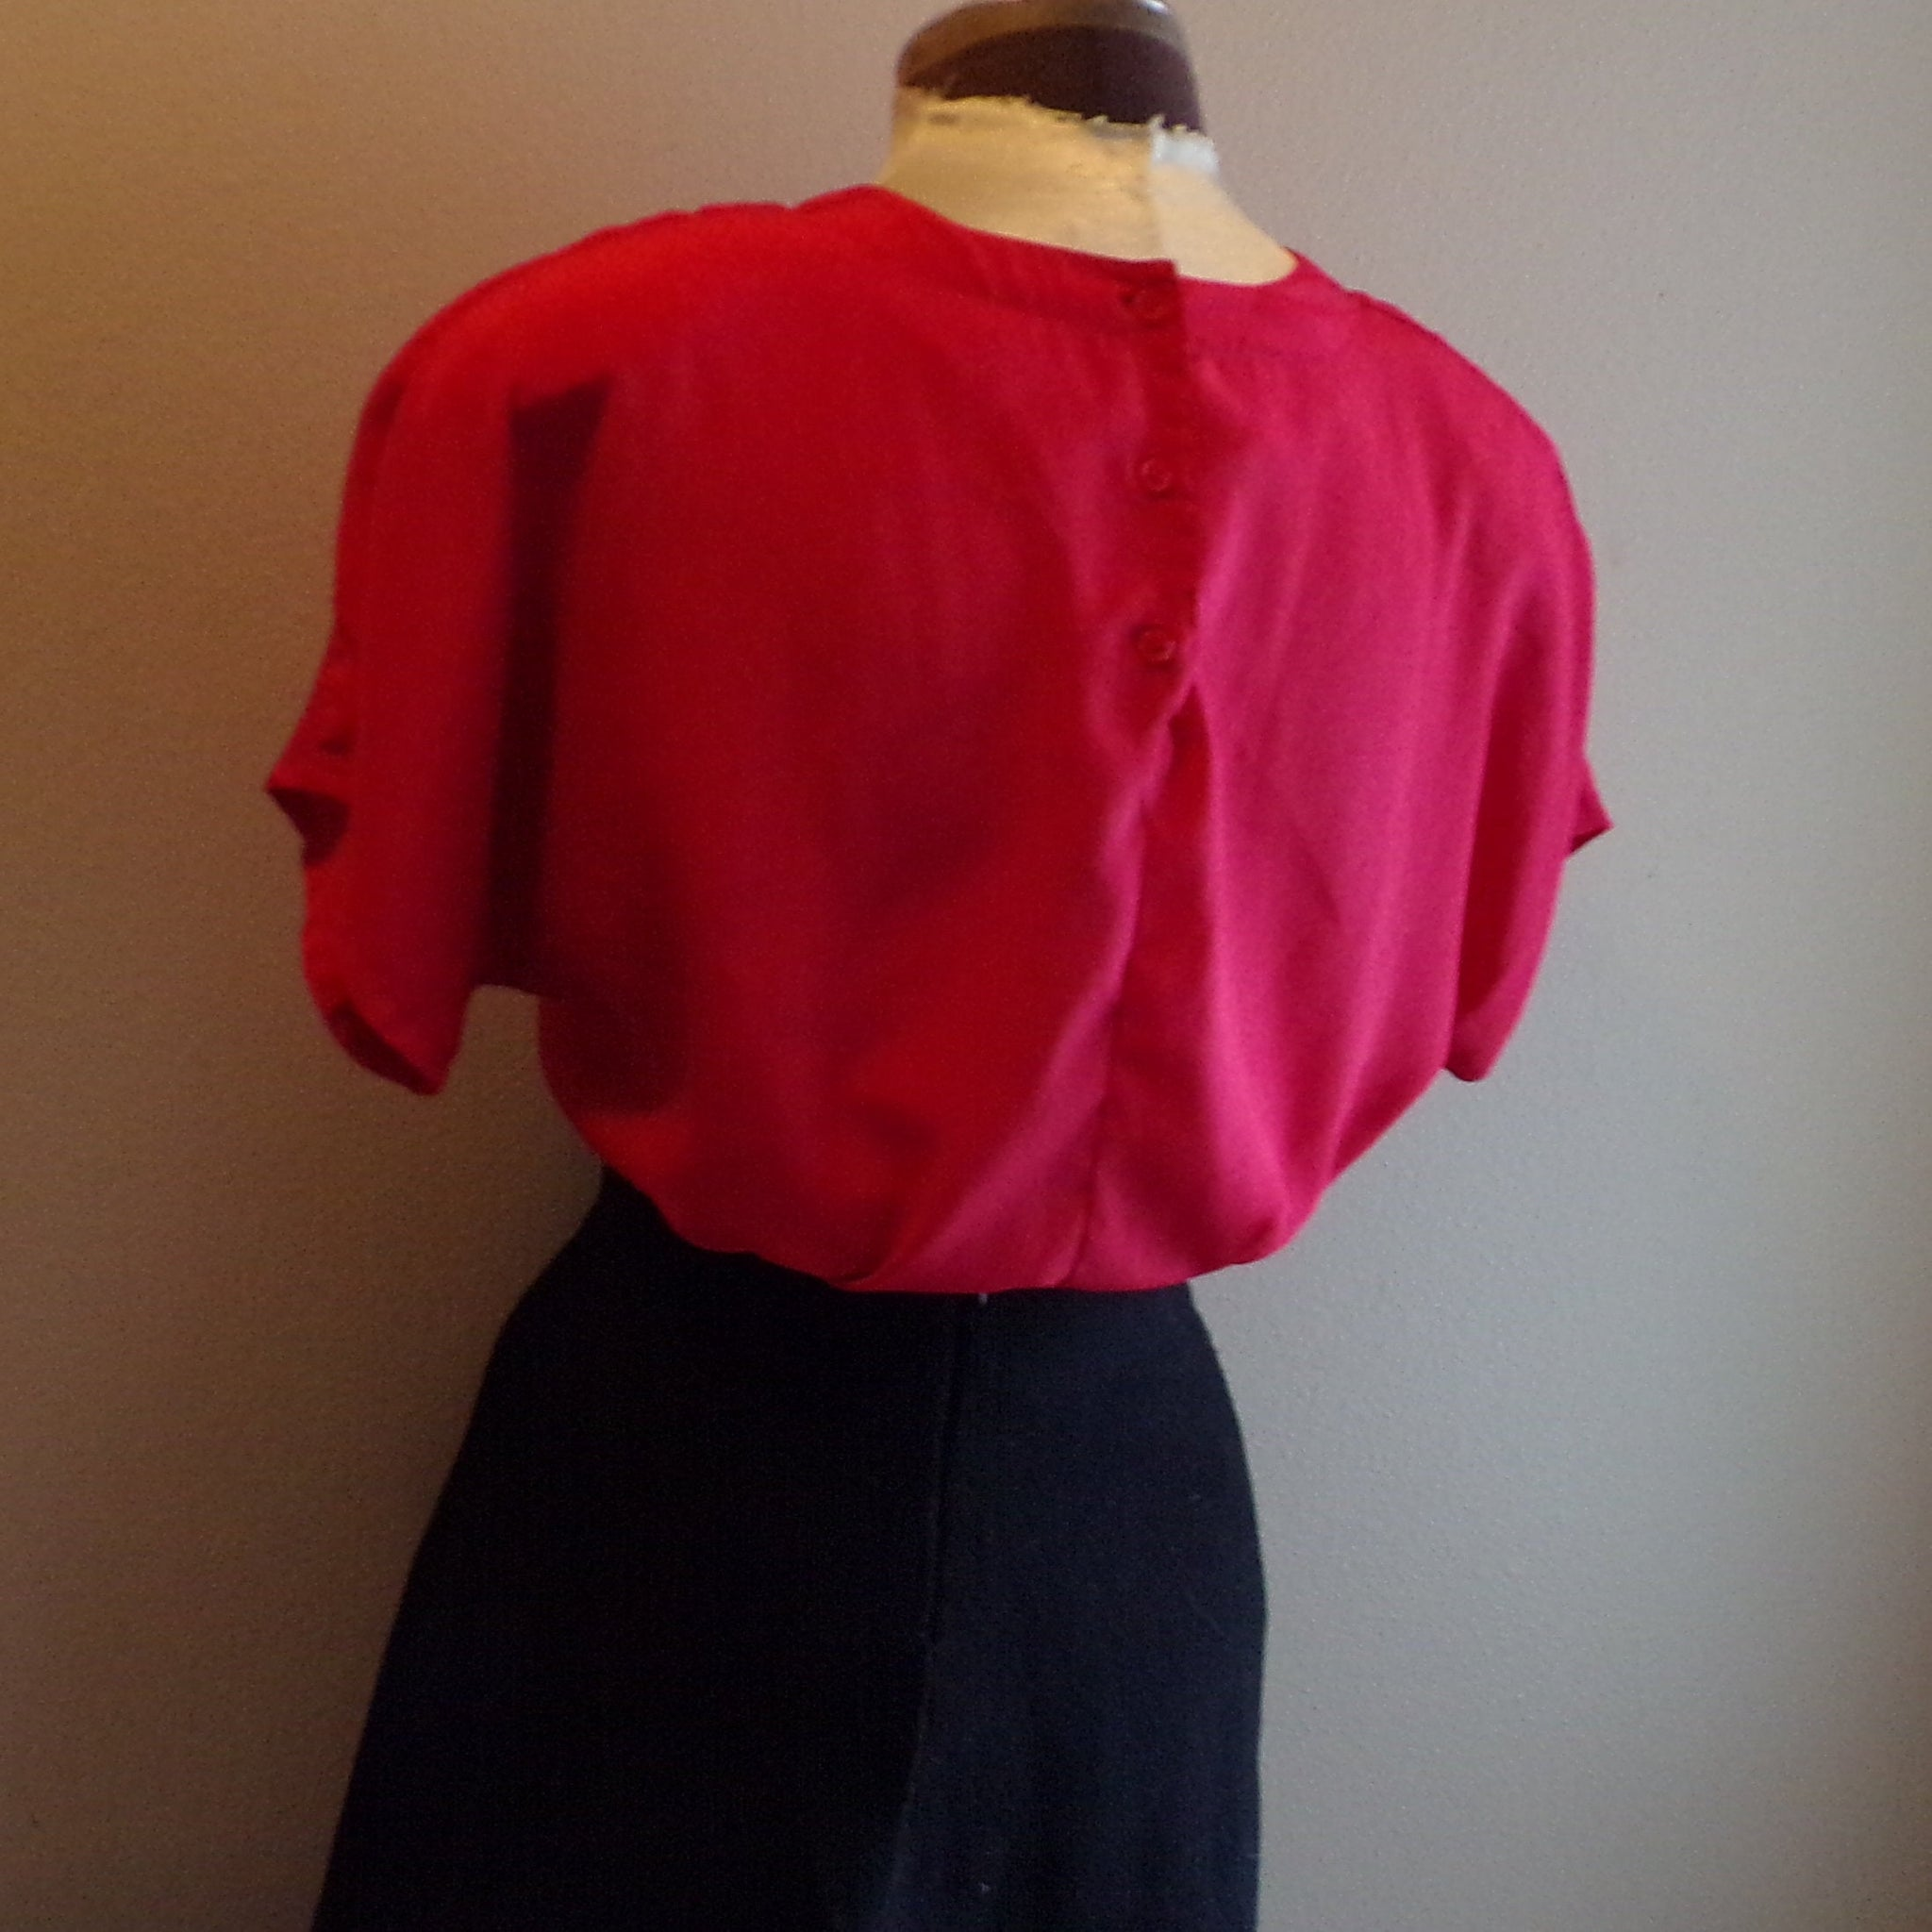 RED TEE SHELL worthington 1980's 80's S M (E10)